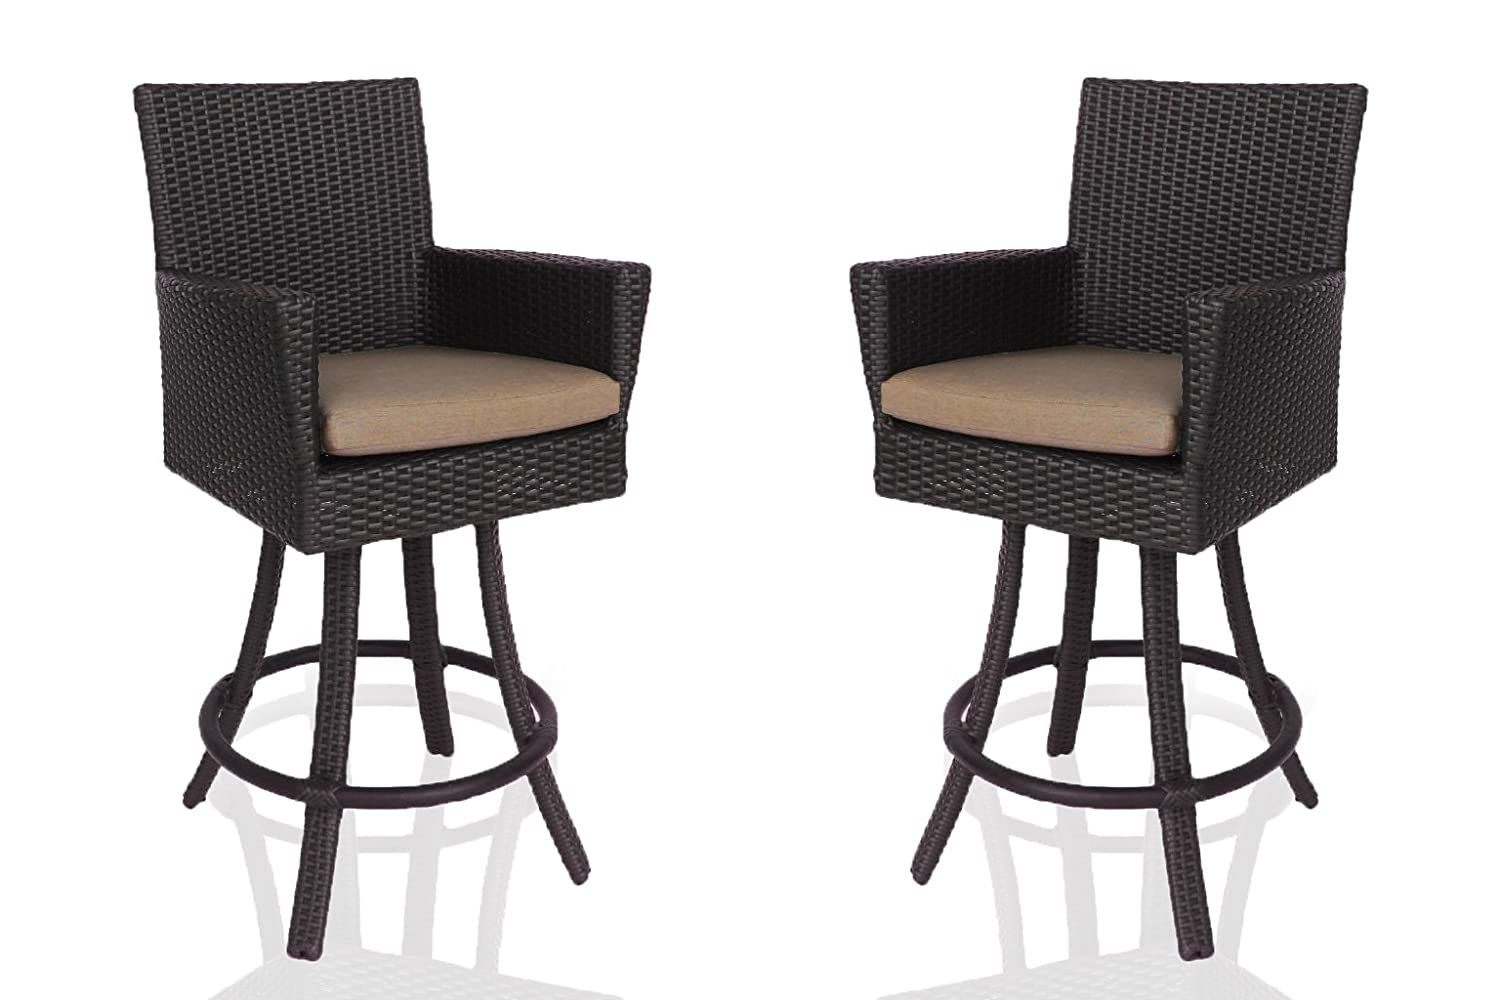 Amazoncom Patio Bar Stools With Back All Weather Outdoor Wicker